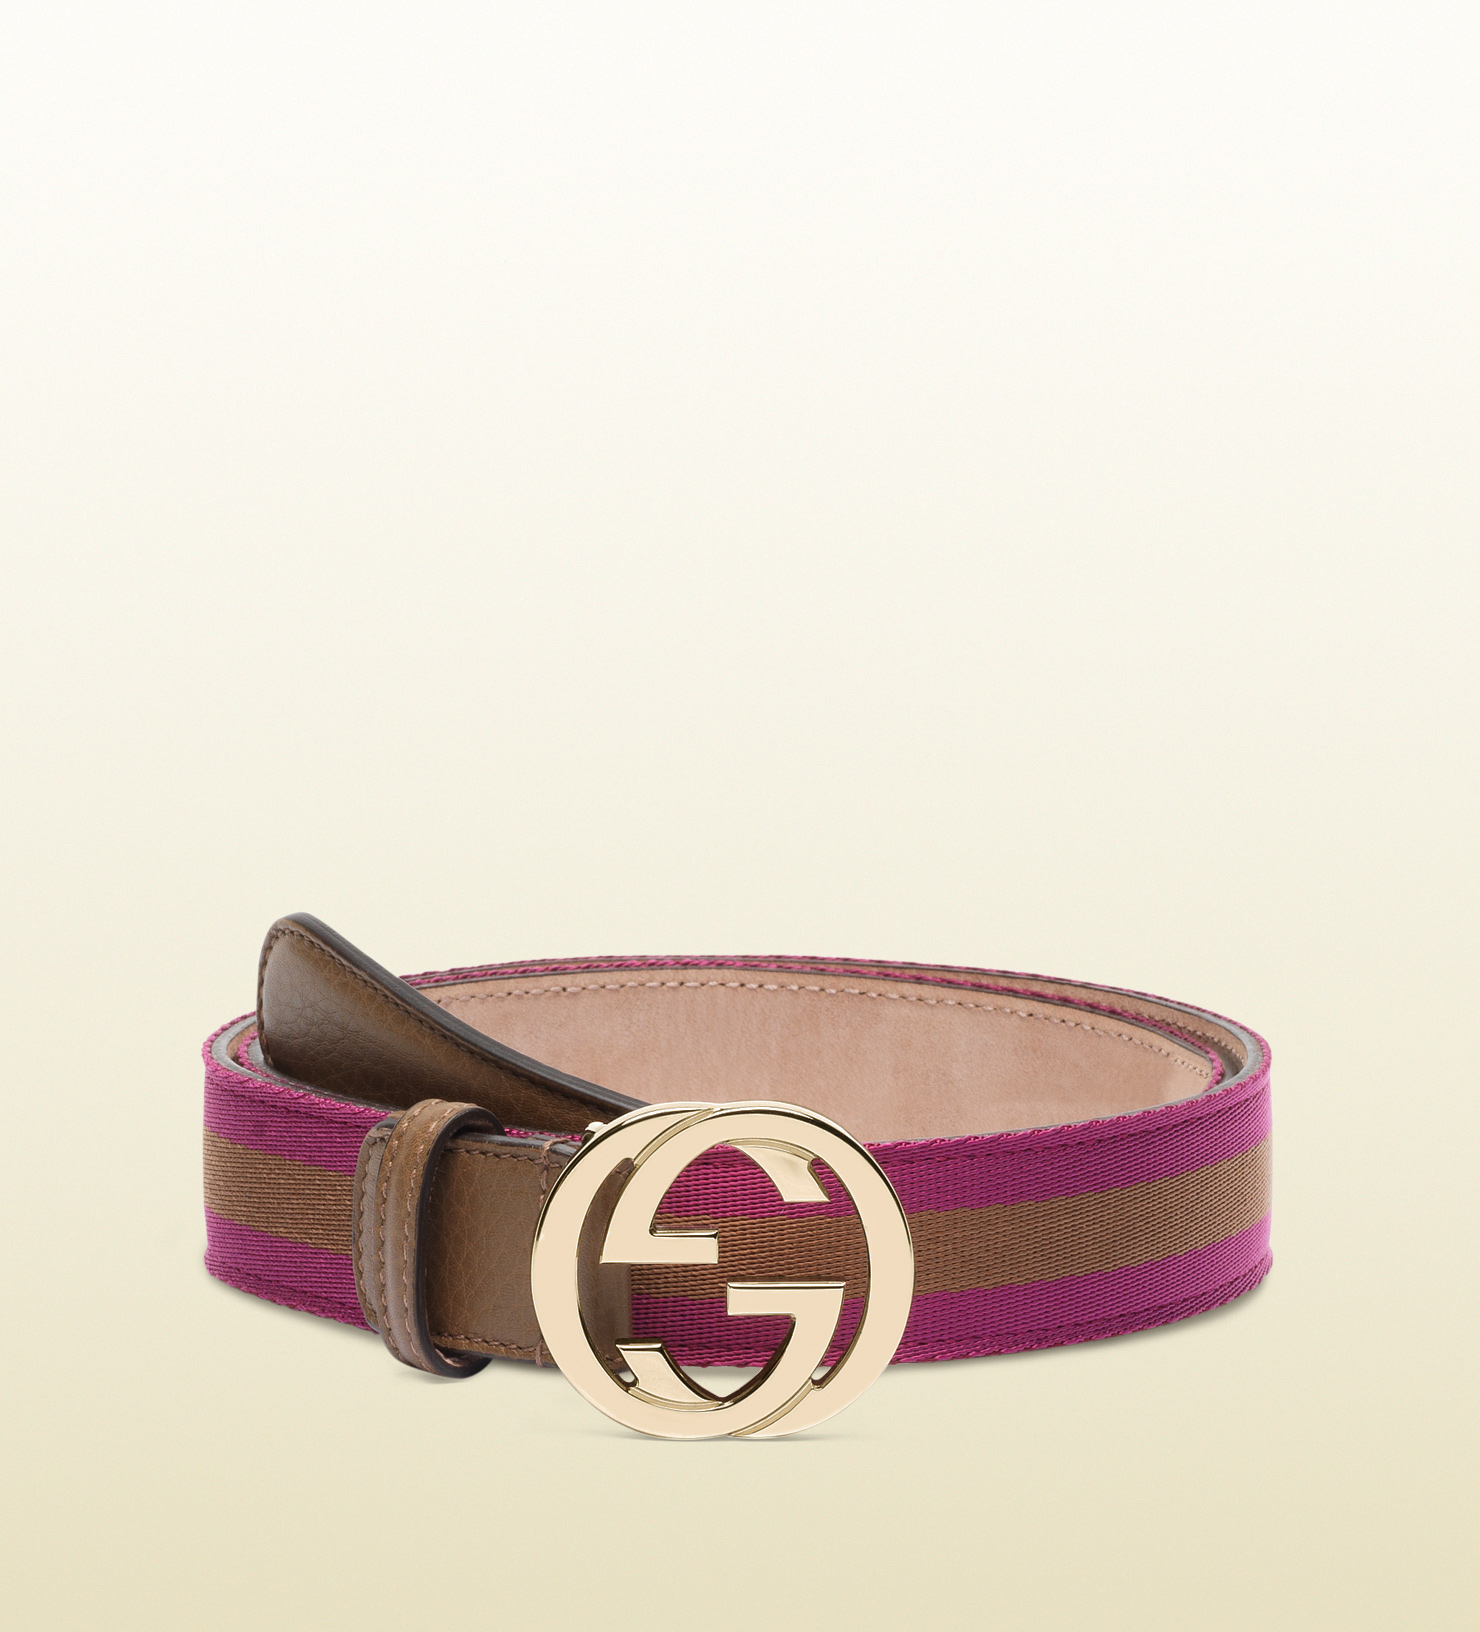 d7daf567ced Lyst - Gucci Nylon Web Belt with Interlocking G Buckle in Brown for Men